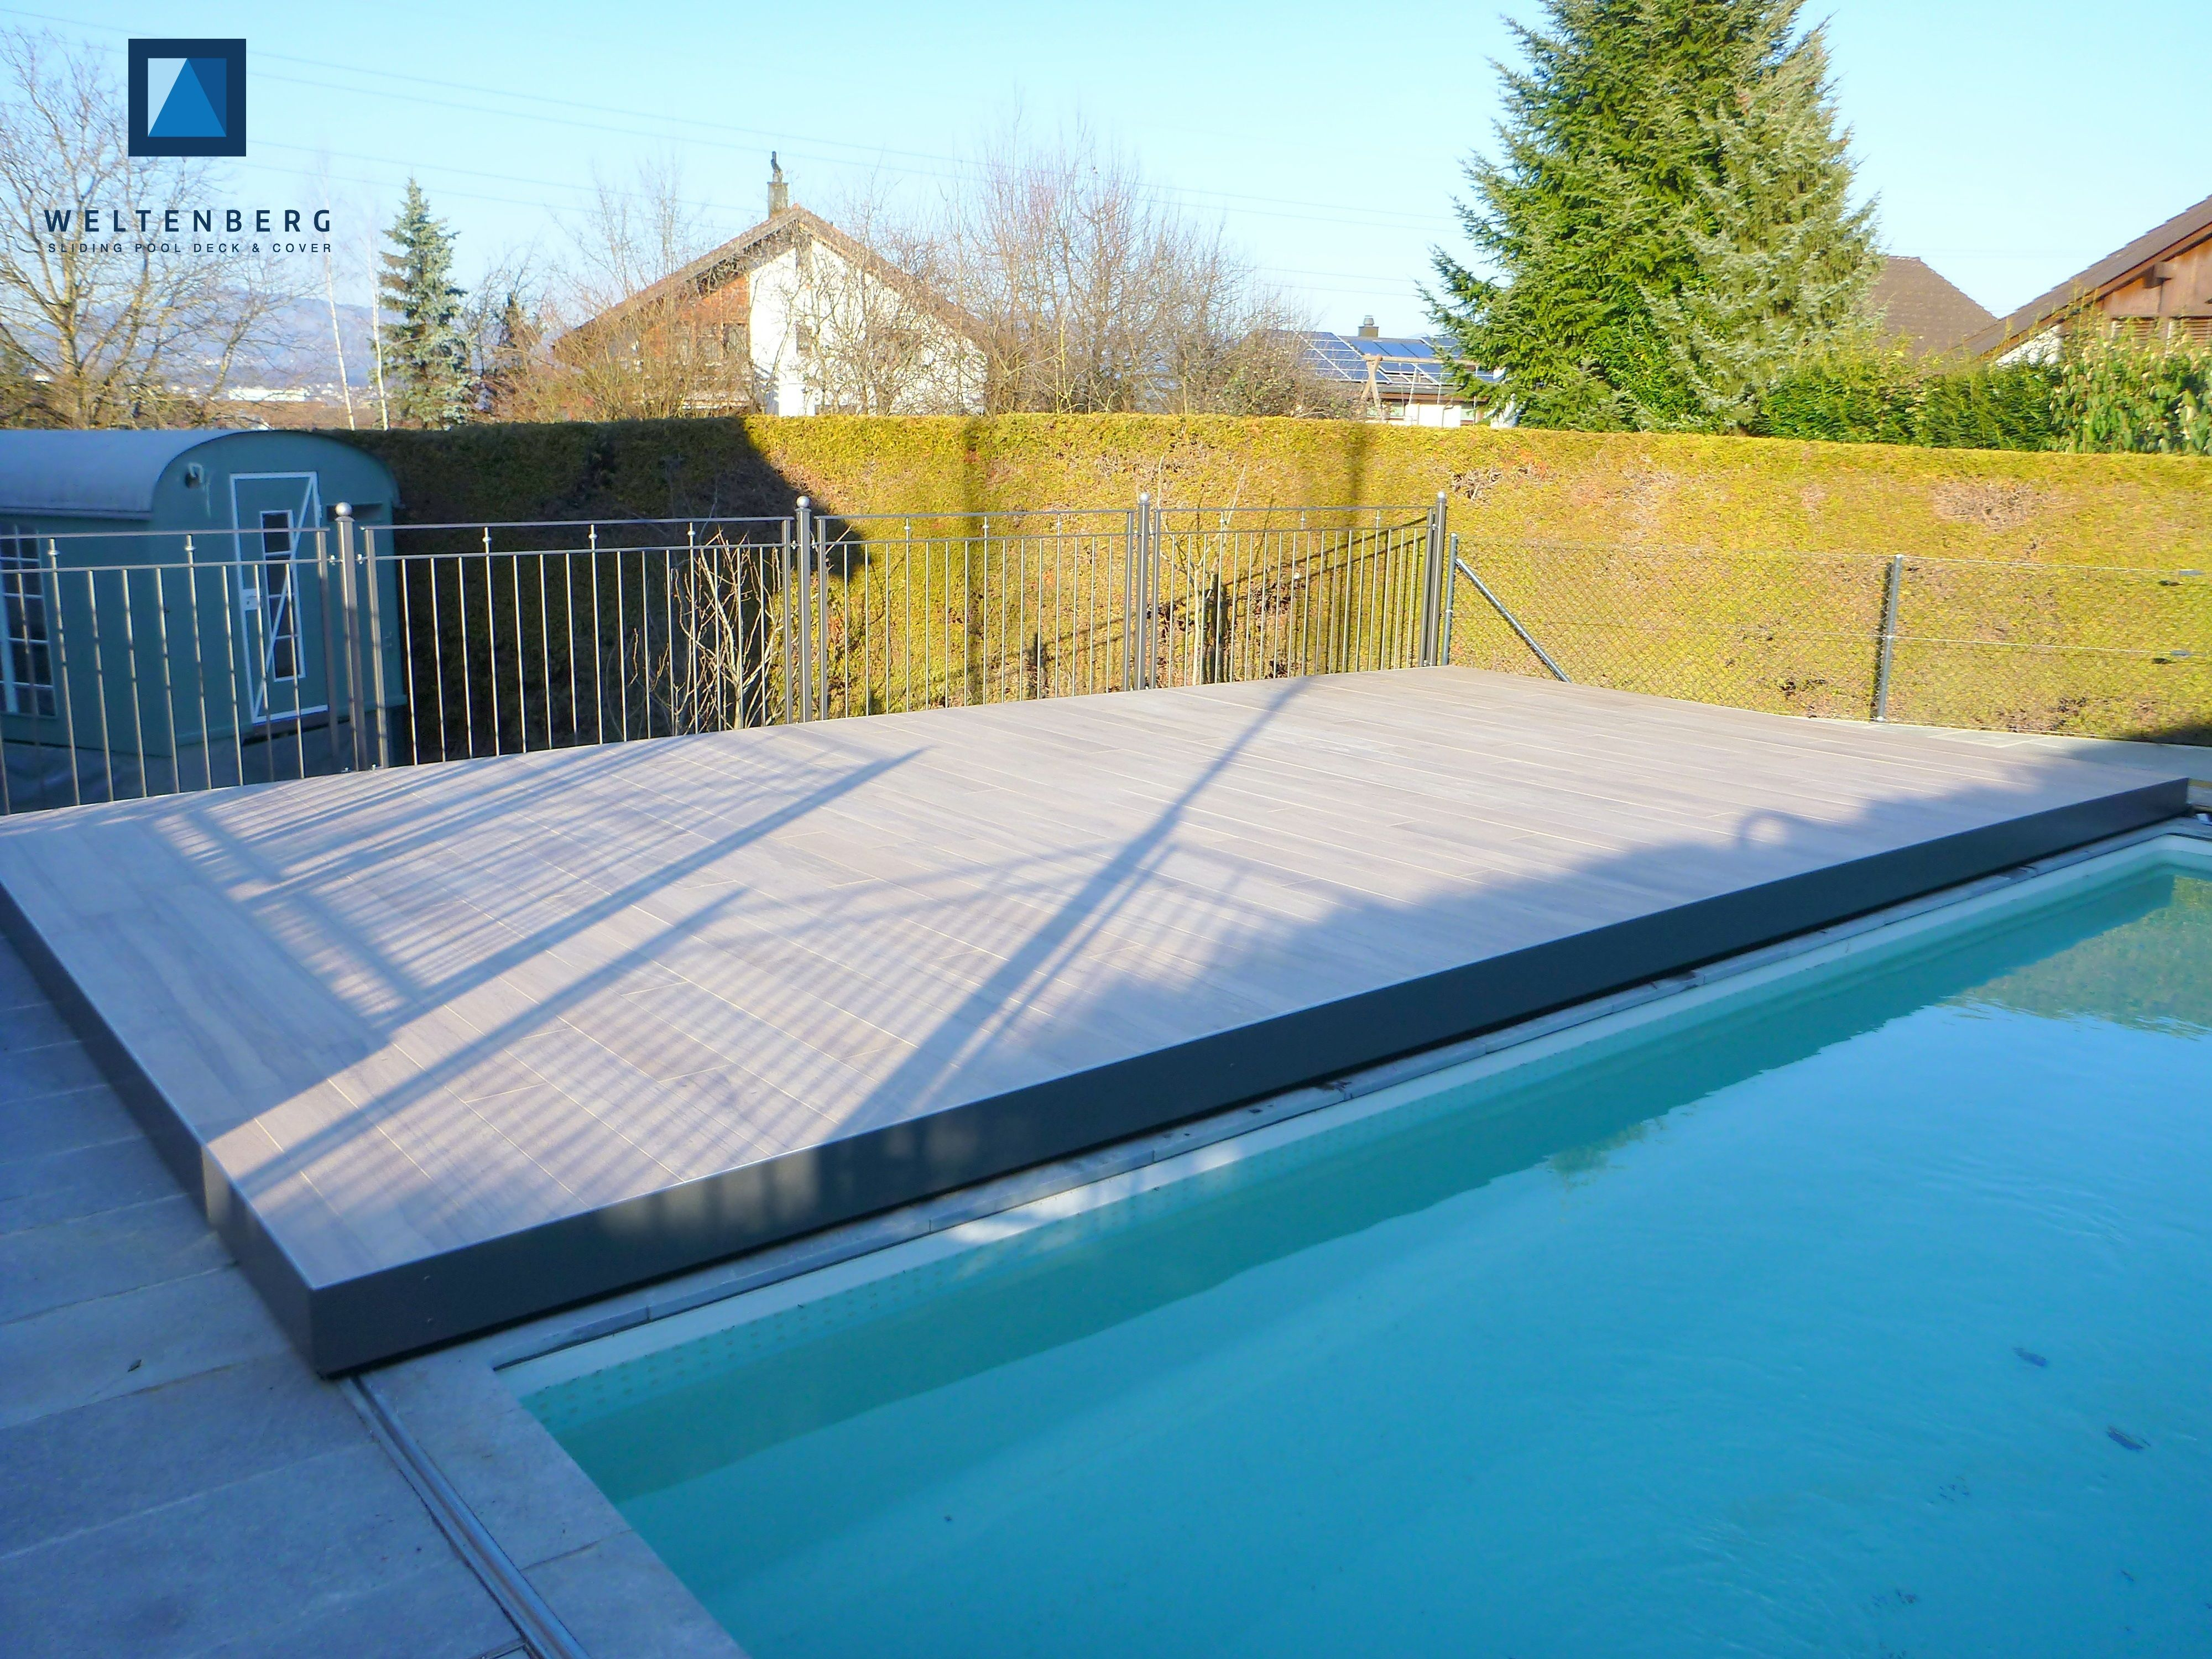 Pool Im Garten Aufwand Sliding Swimming Pool Cover And Terrace Movable Pooldeck